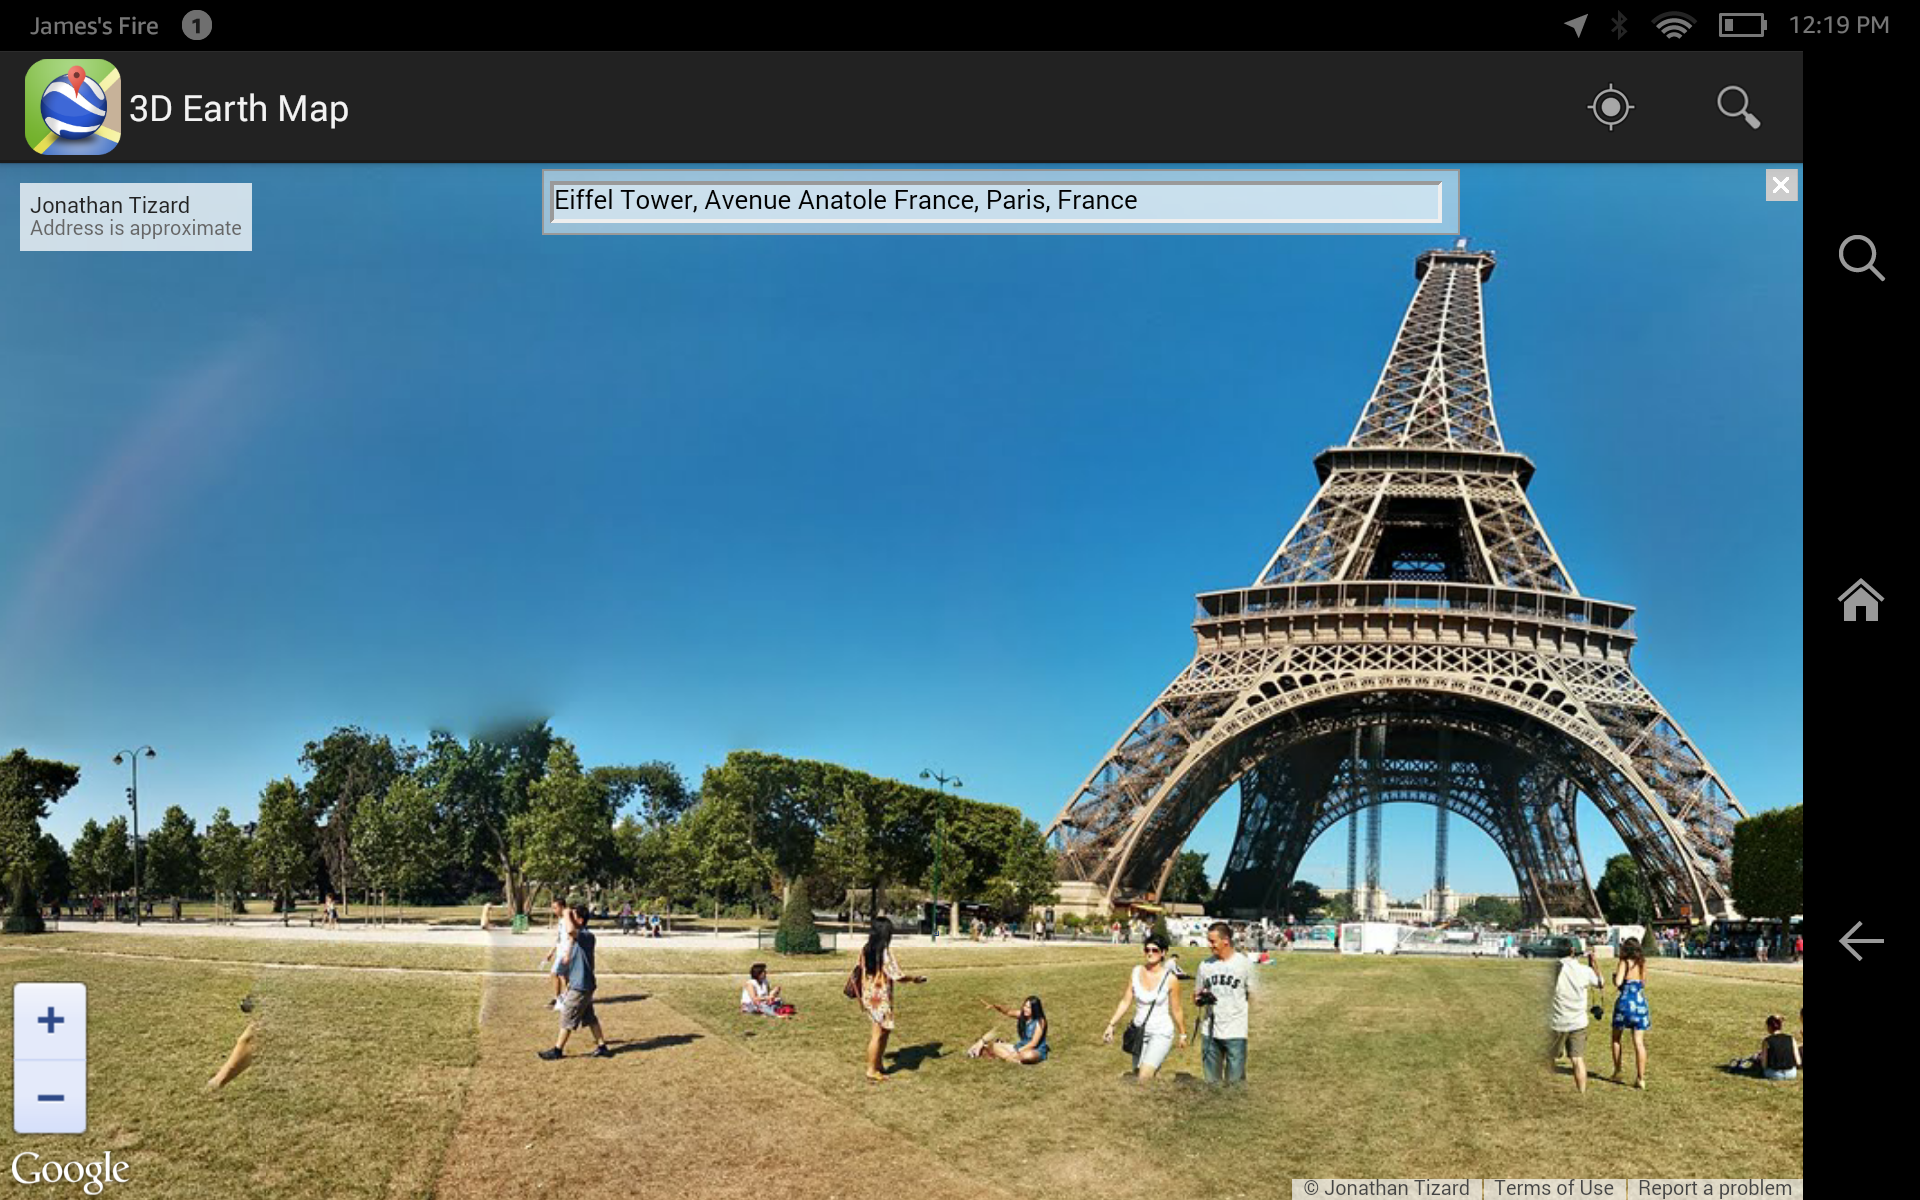 Amazon.com: 3D Earth Map for google earth: Appstore for Android